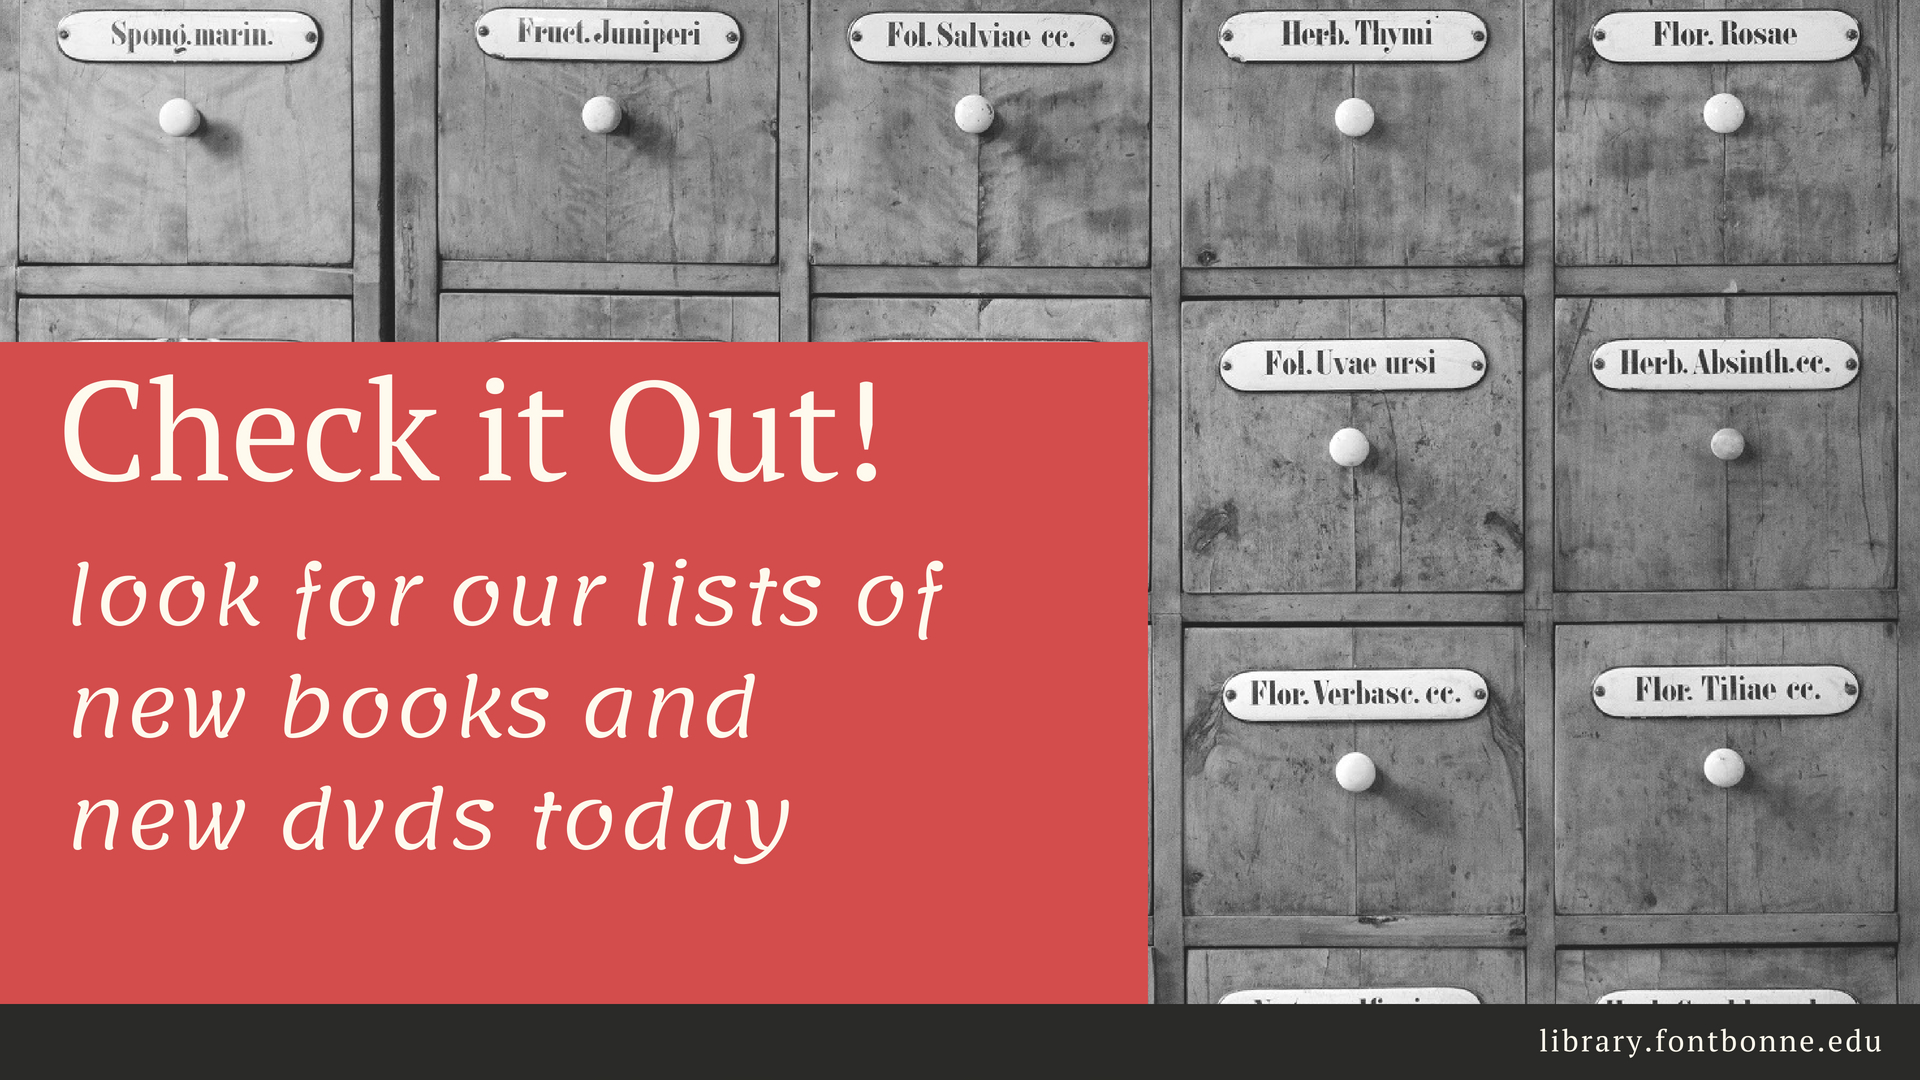 See our lists of new books and dvds